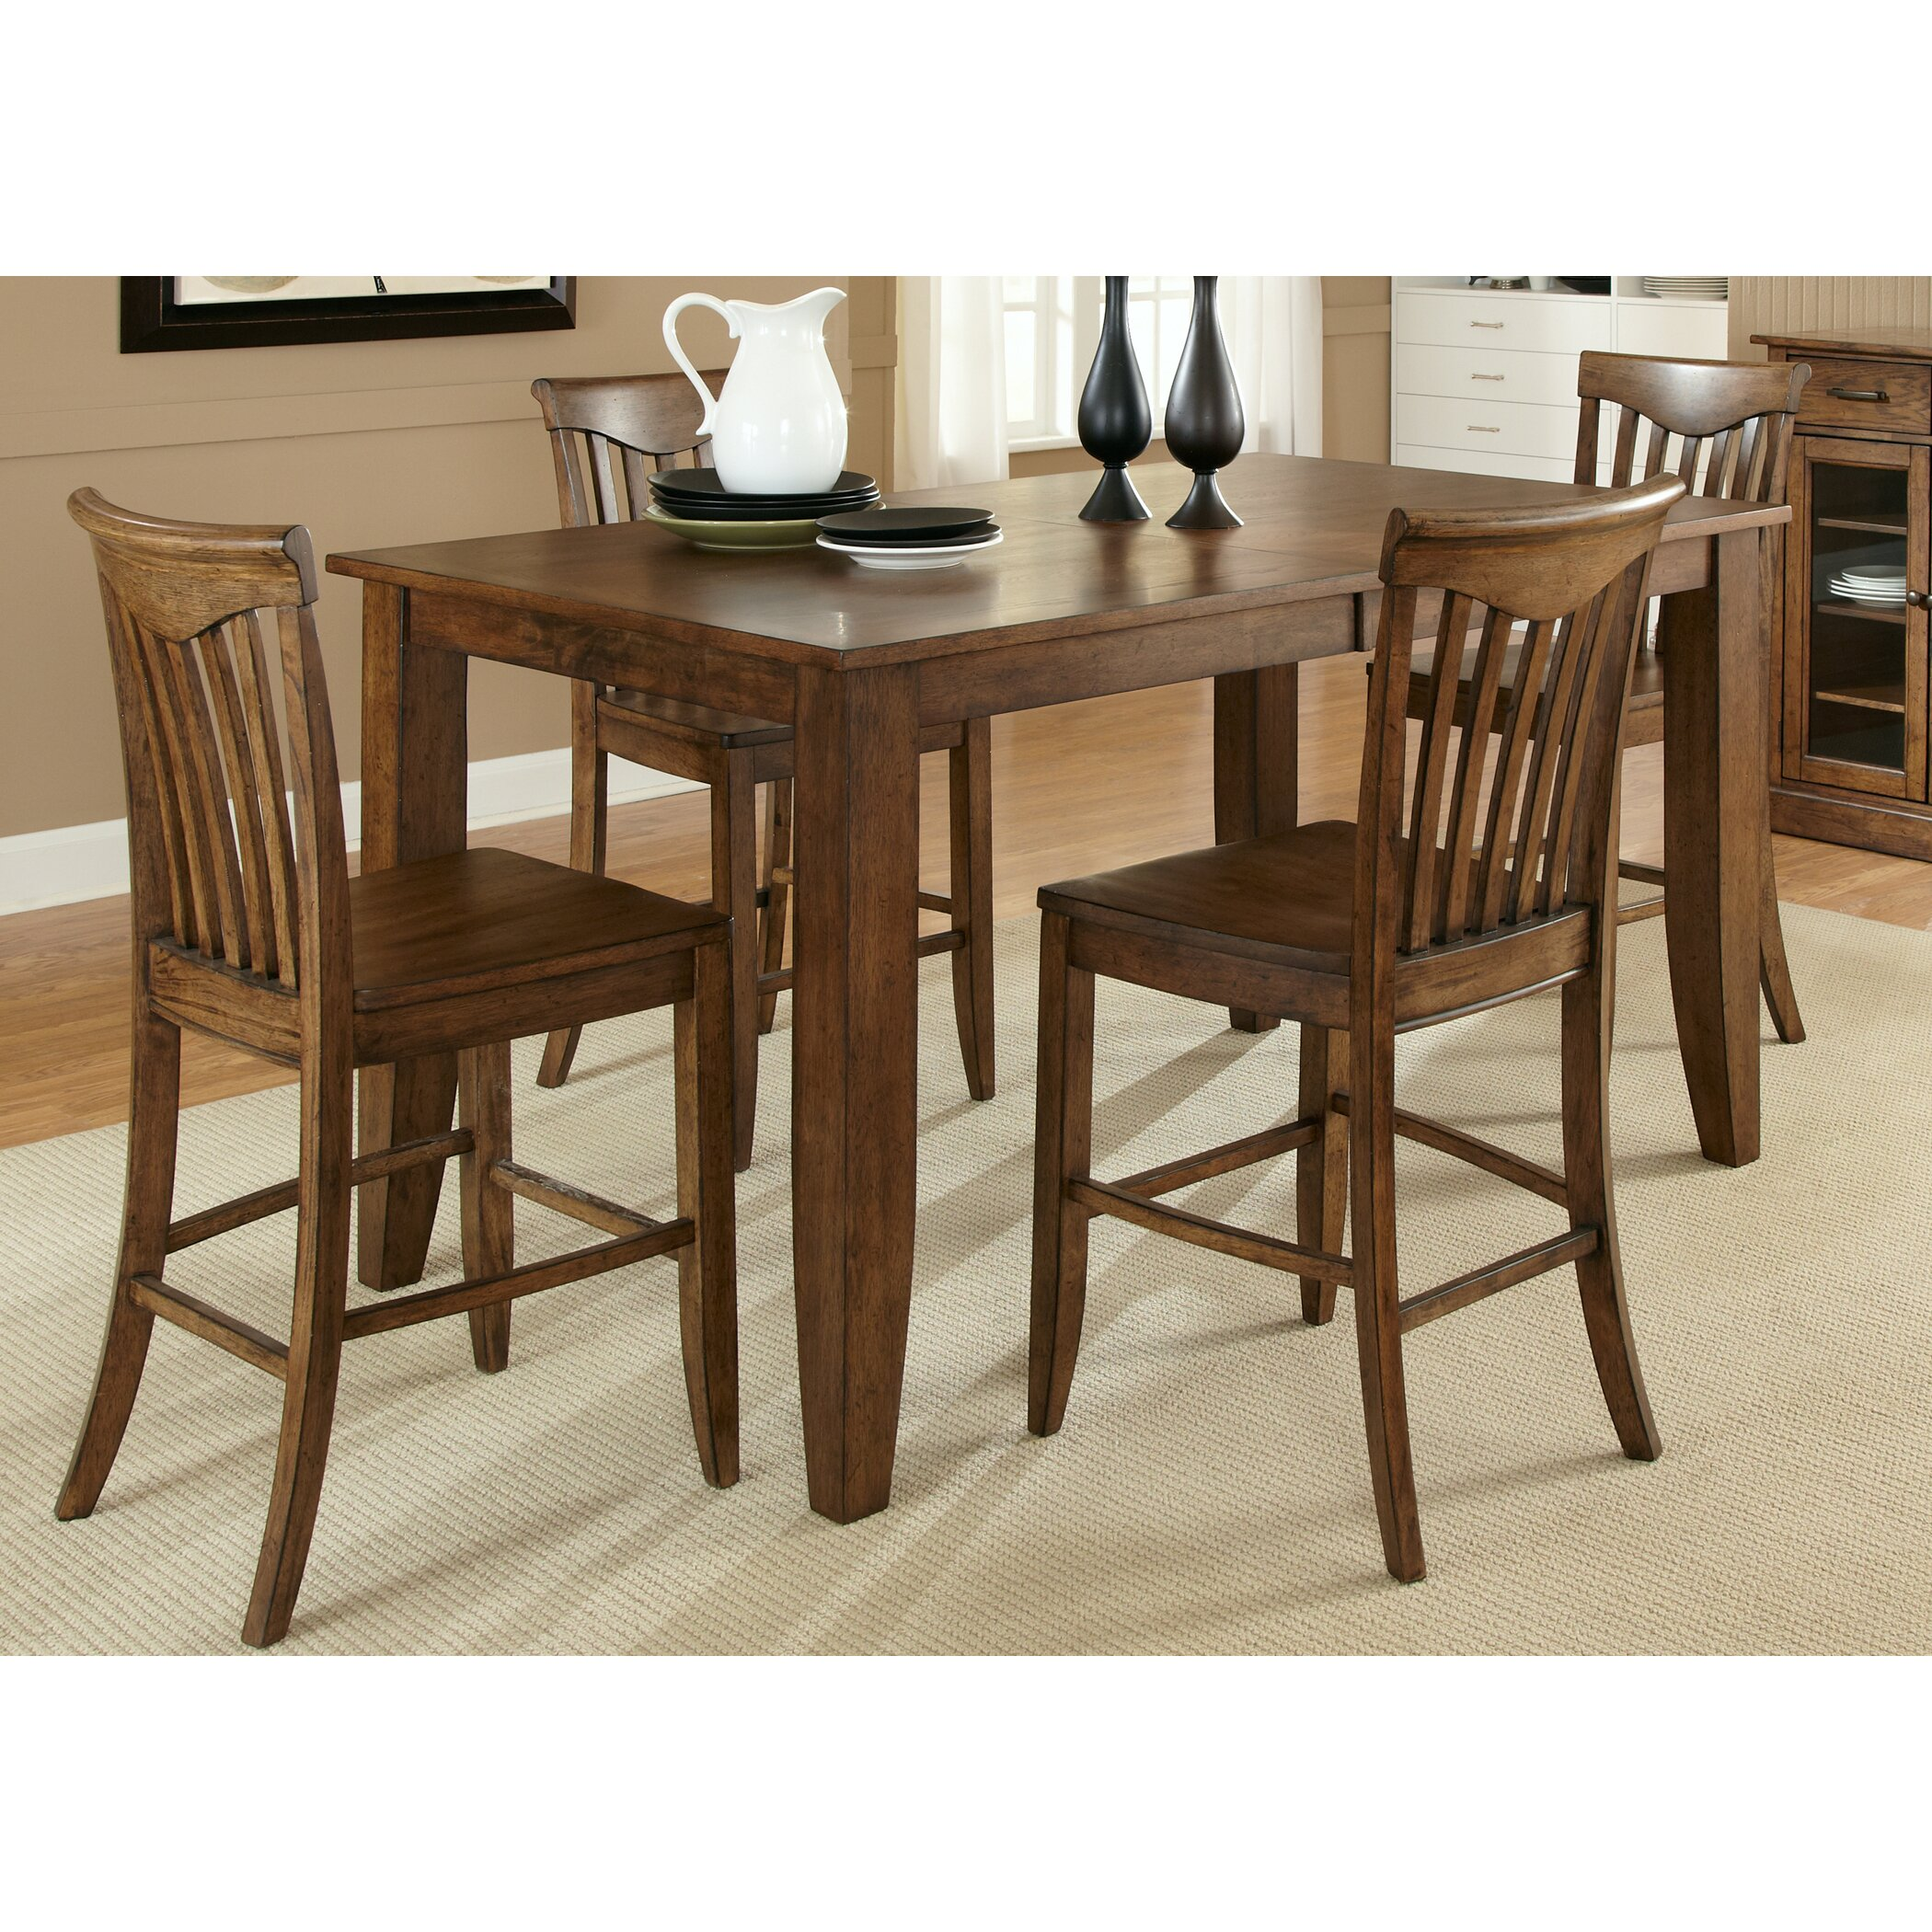 Liberty furniture arbor hills counter height extendable for Counter height extendable dining table